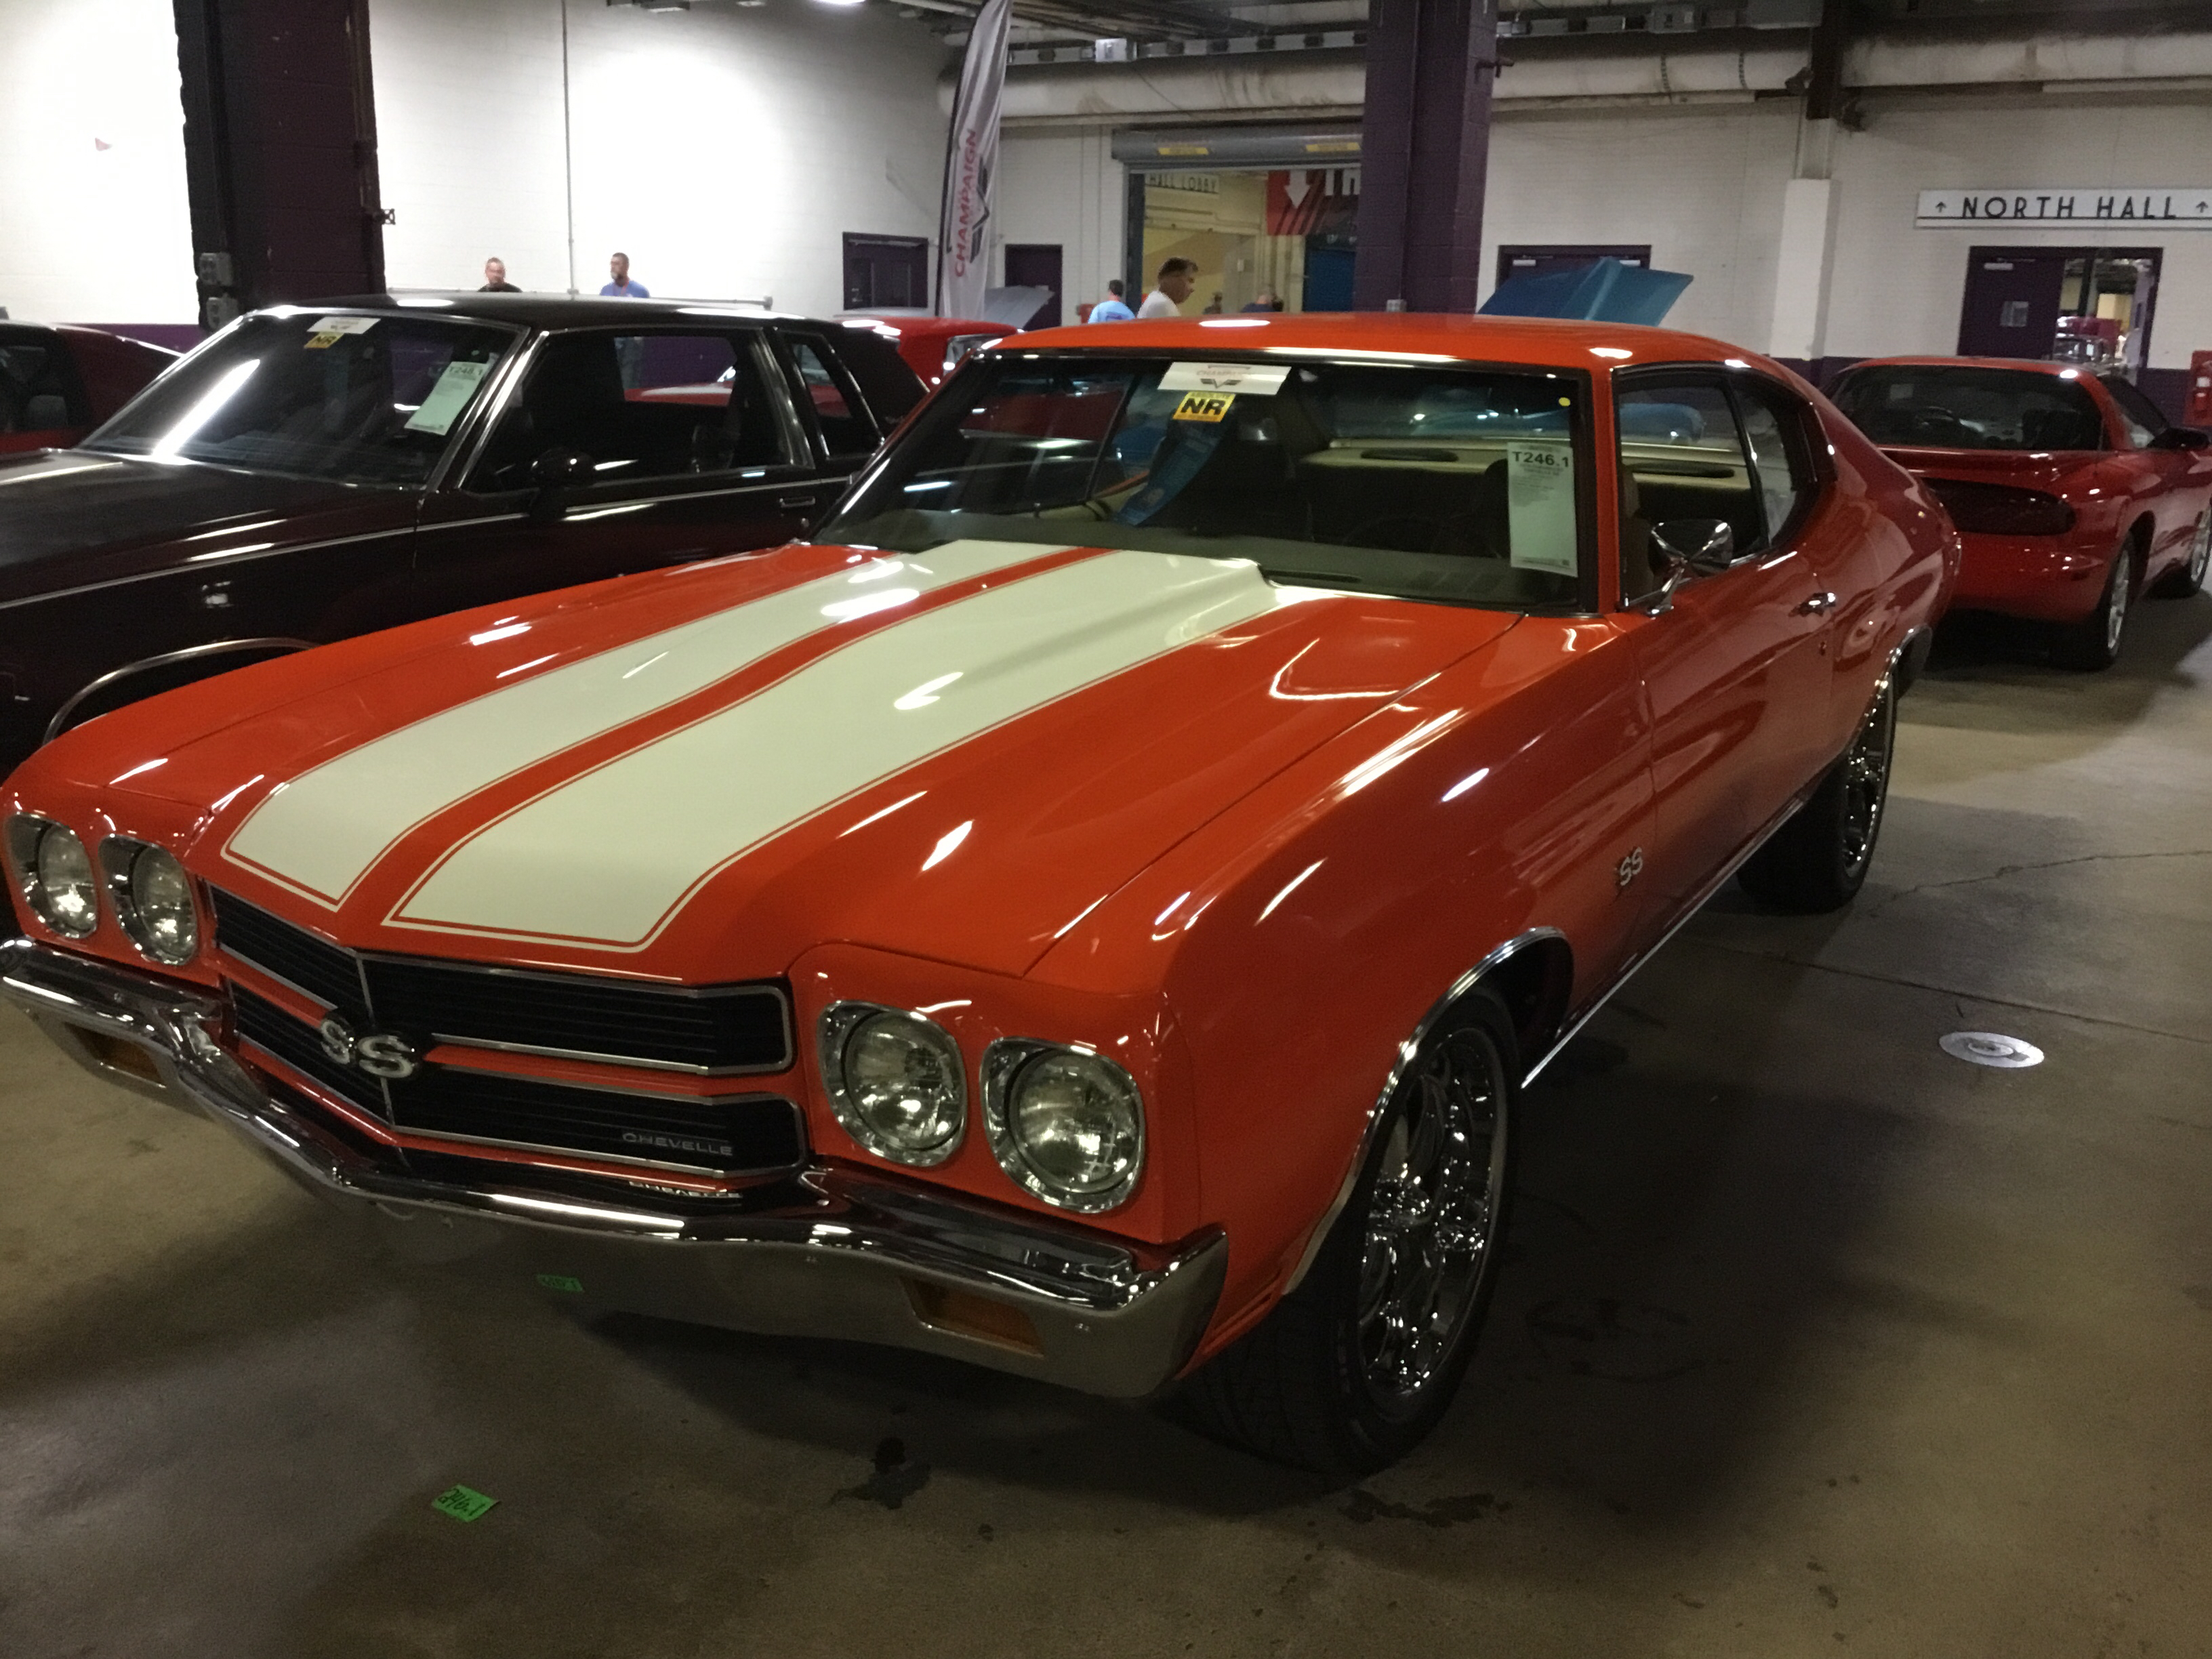 1970 Chevrolet Chevelle Values Hagerty Valuation Tool